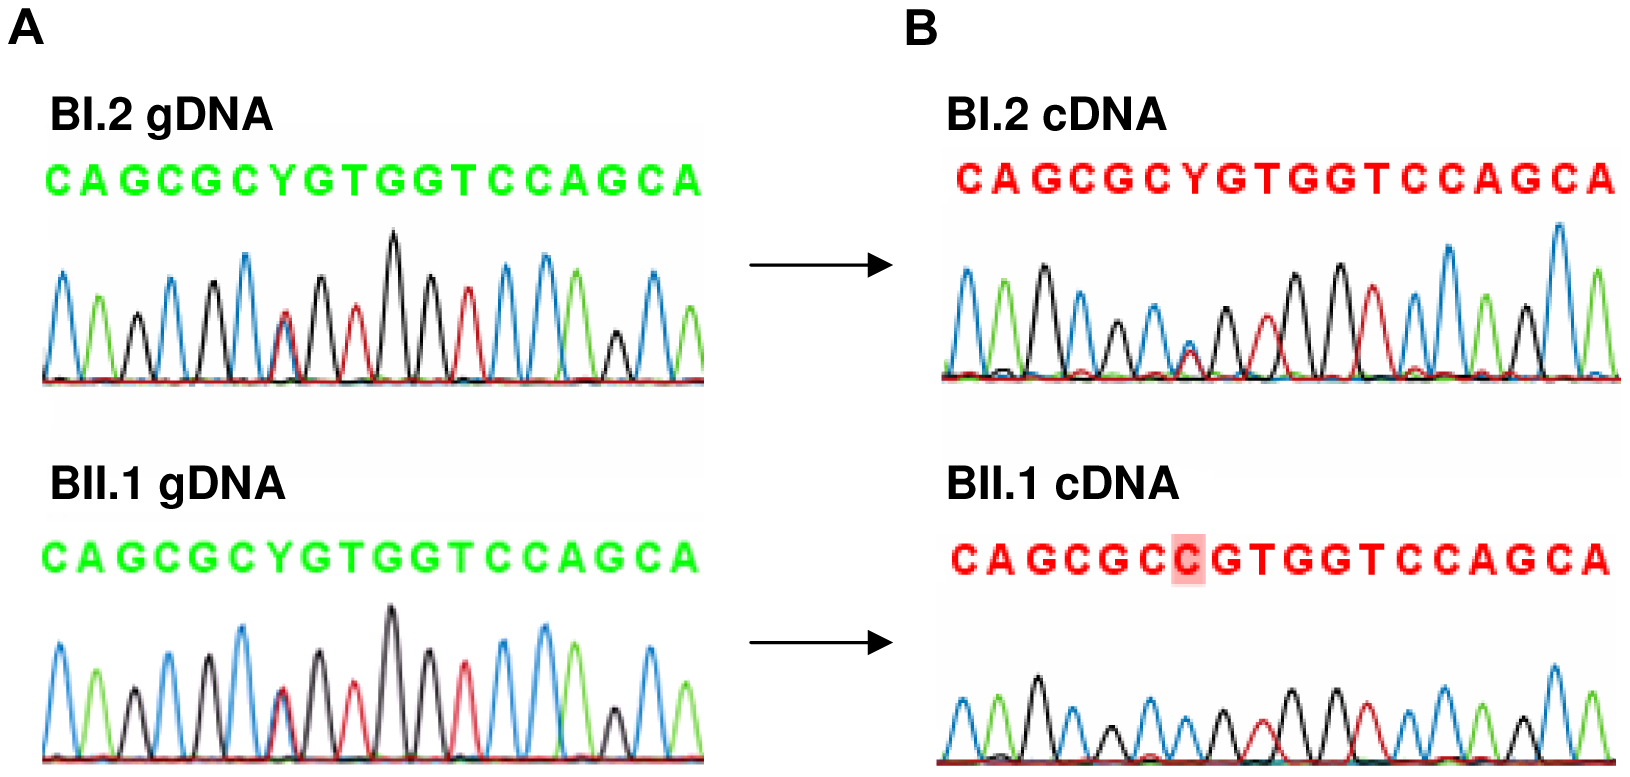 Analysis of rs4851214 which maps to coding exon 14 of <i>AFF3</i> using paired genomic DNA and cDNA templates from the unaffected carrier mother BI.2 and the affected carrier son BII.1 from family B.